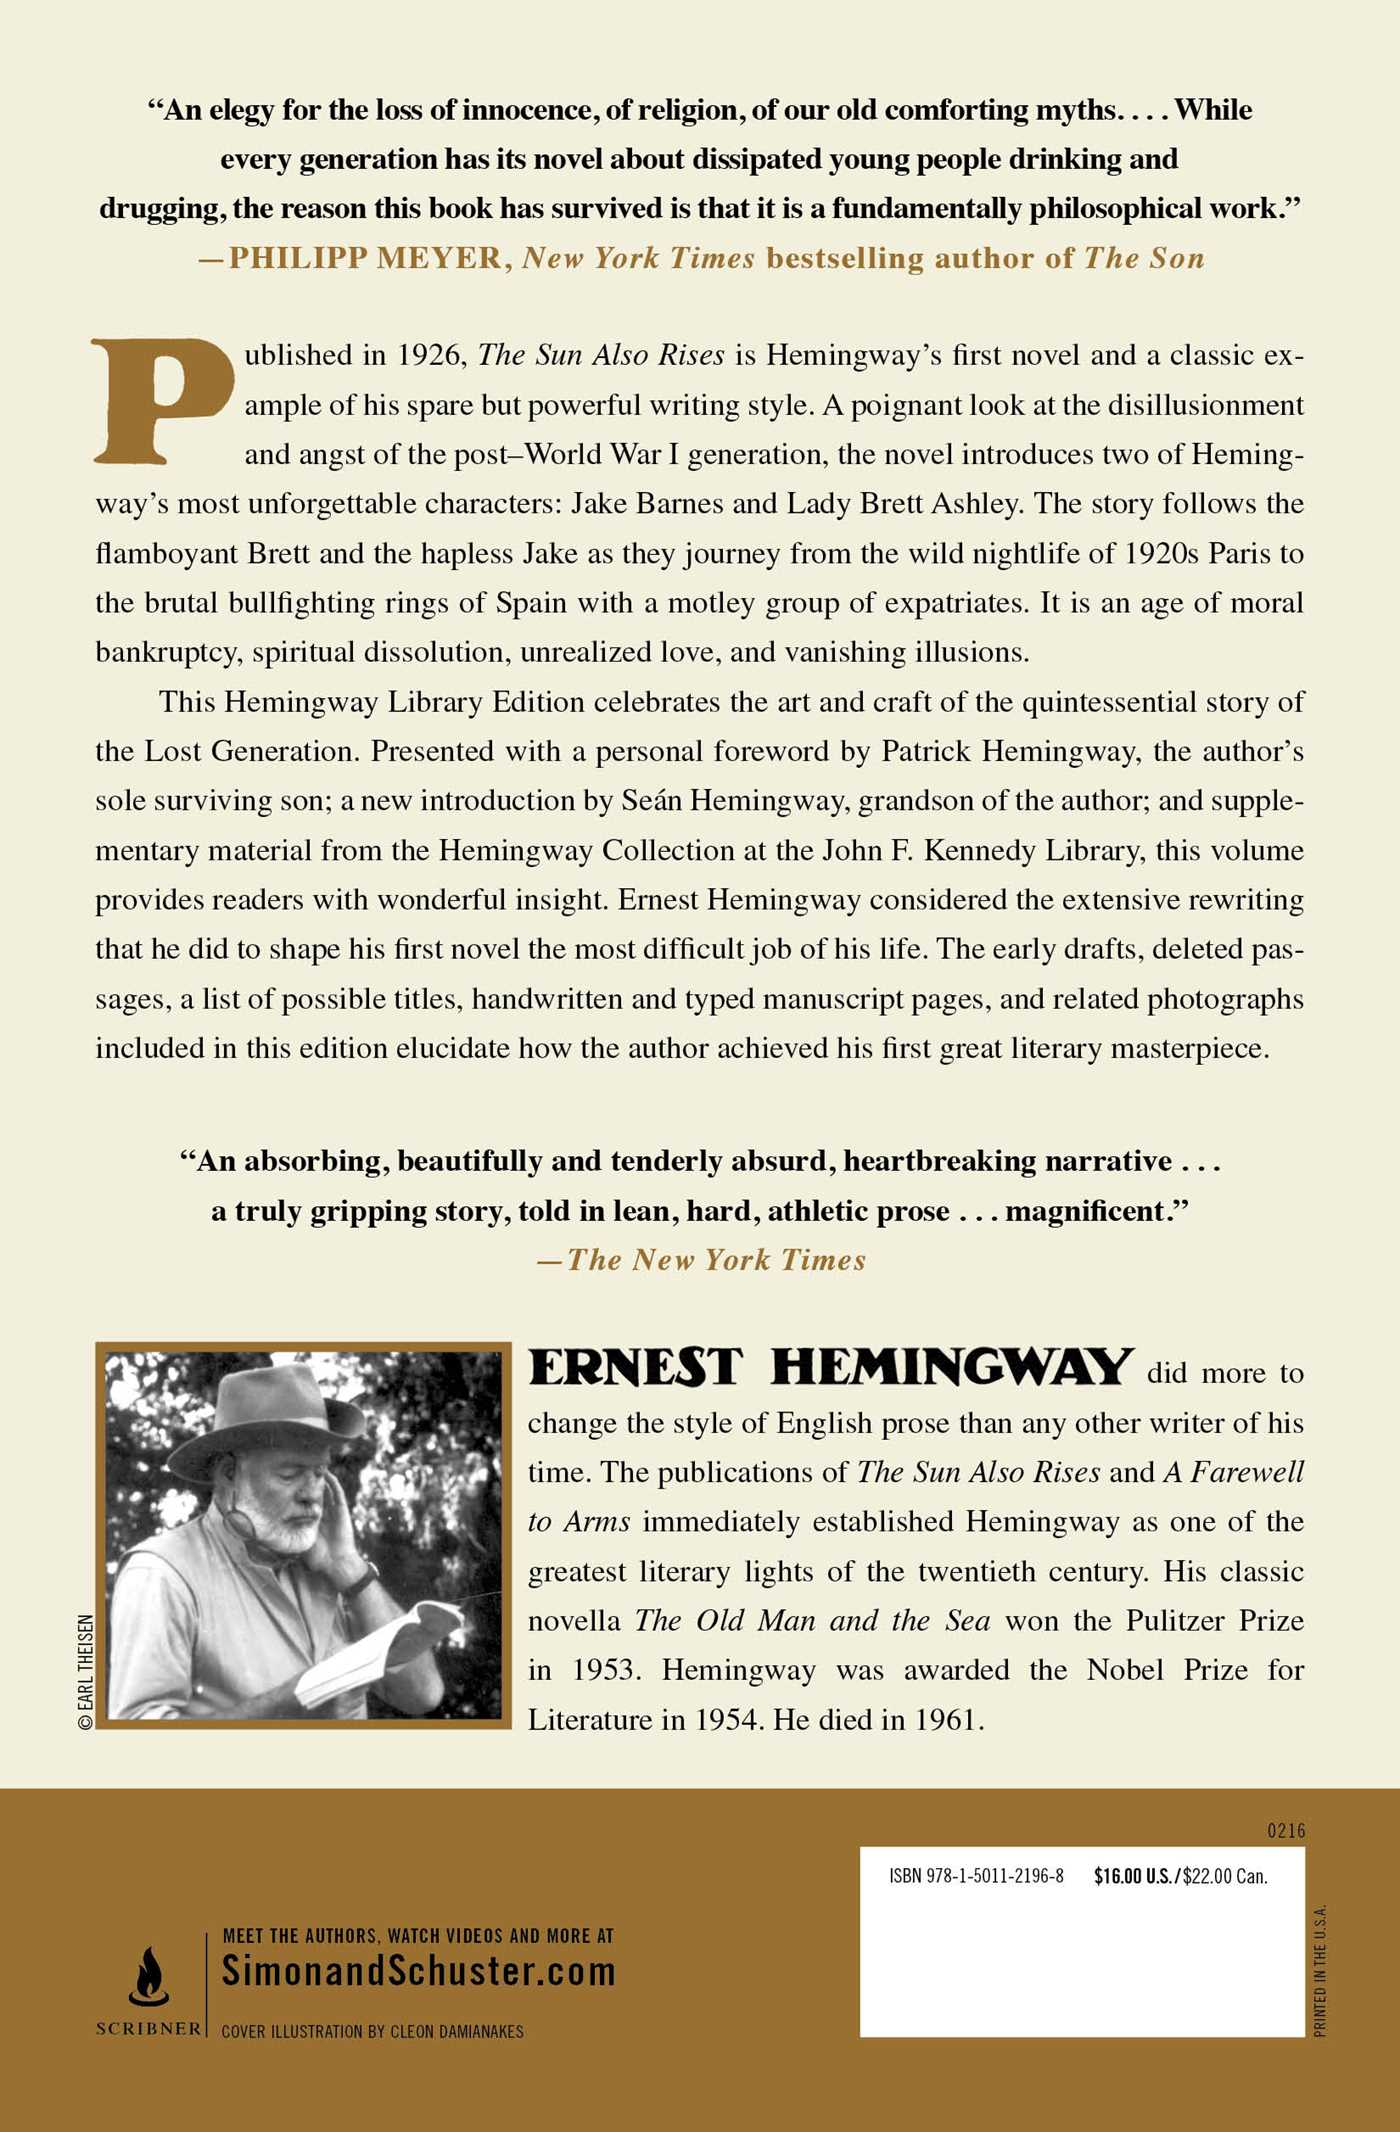 an analysis of hemingways the sun also rises This essay presents information about ernest hemingway's novel the sun also rises the essay provides a plot summary of the novel and contextualizes the content through an exploration of historical, religious, scientific & technological, societal and biographical information the sun also rises.